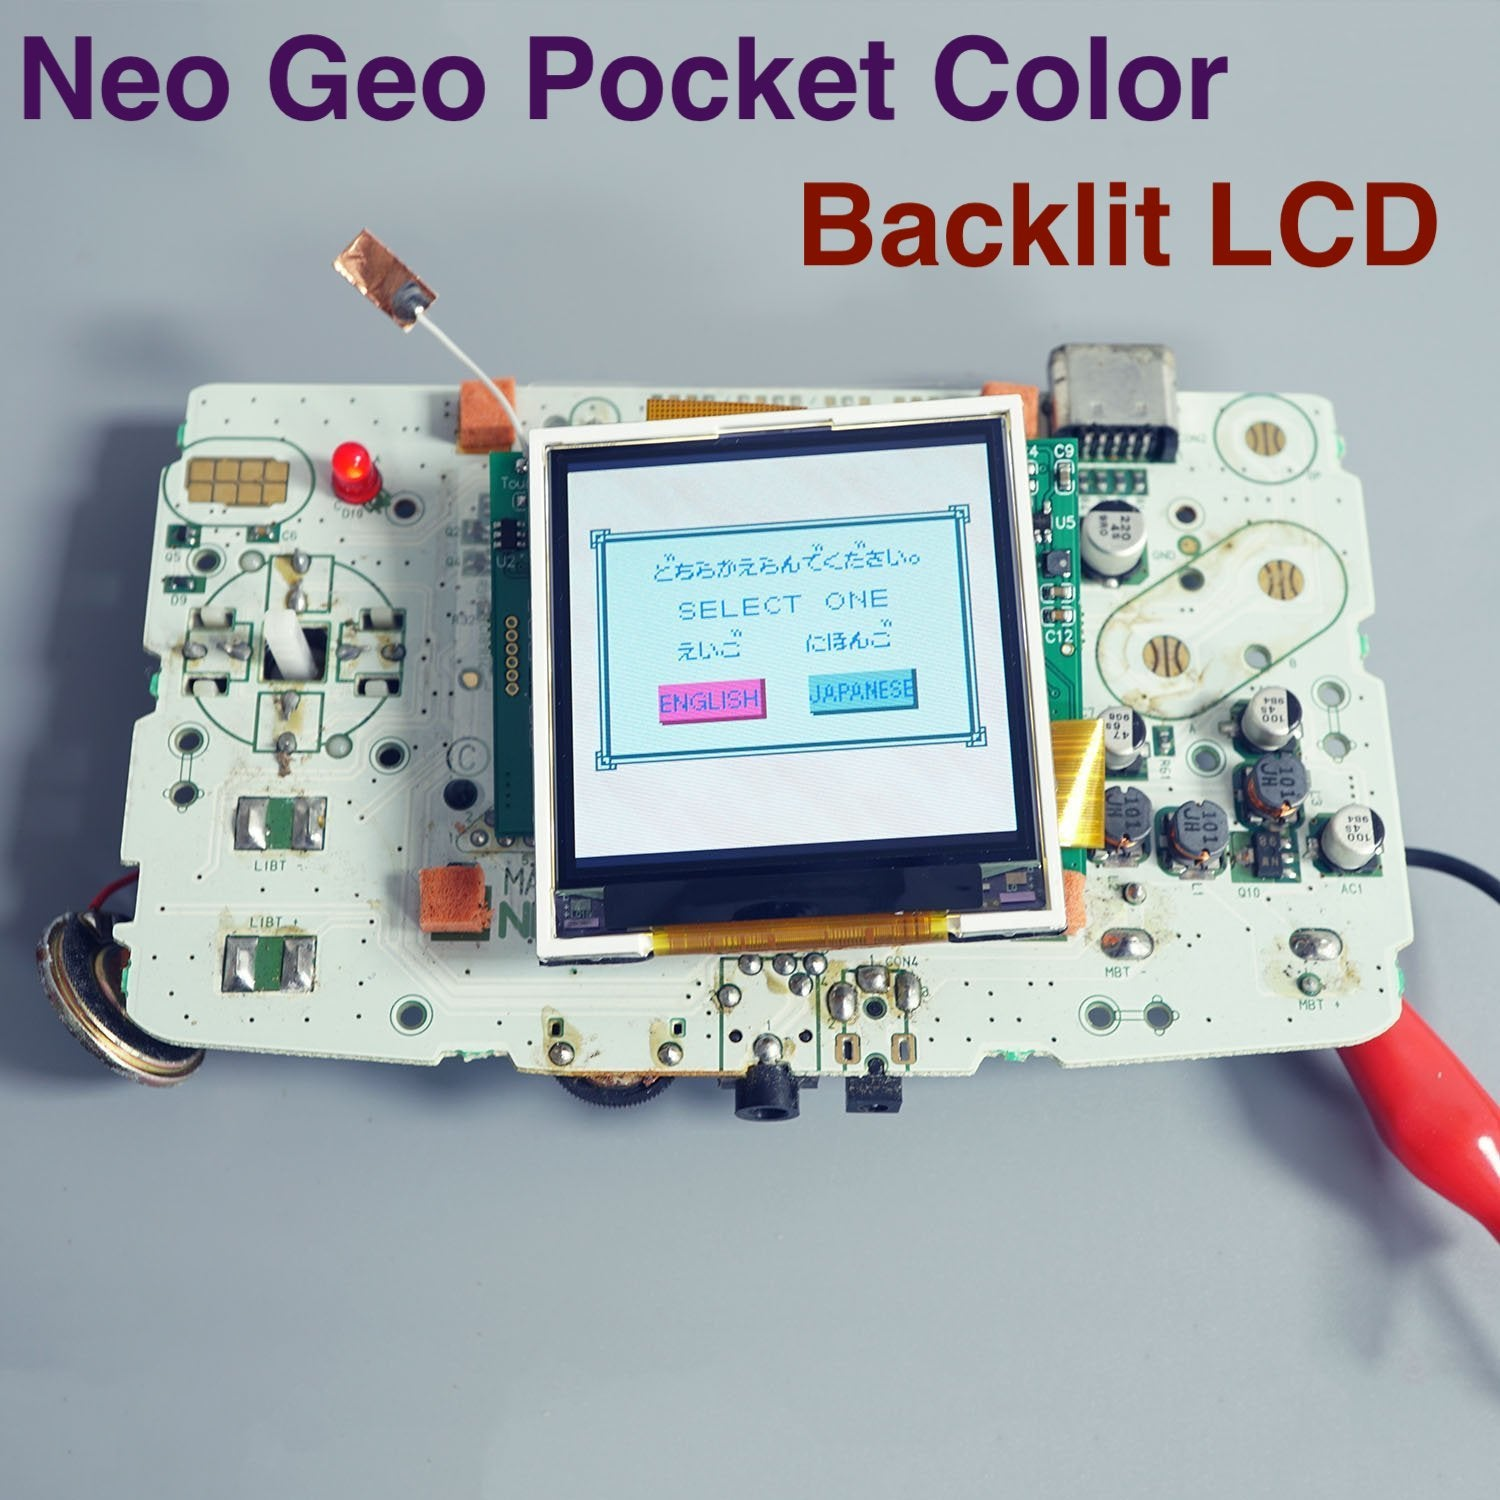 Hand Held Legend, HHL, Neo Geo, Neo Geo Pocket, Neo Geo Pocket Color, NGP, NGPC, backlit LCD, backlight, LCD